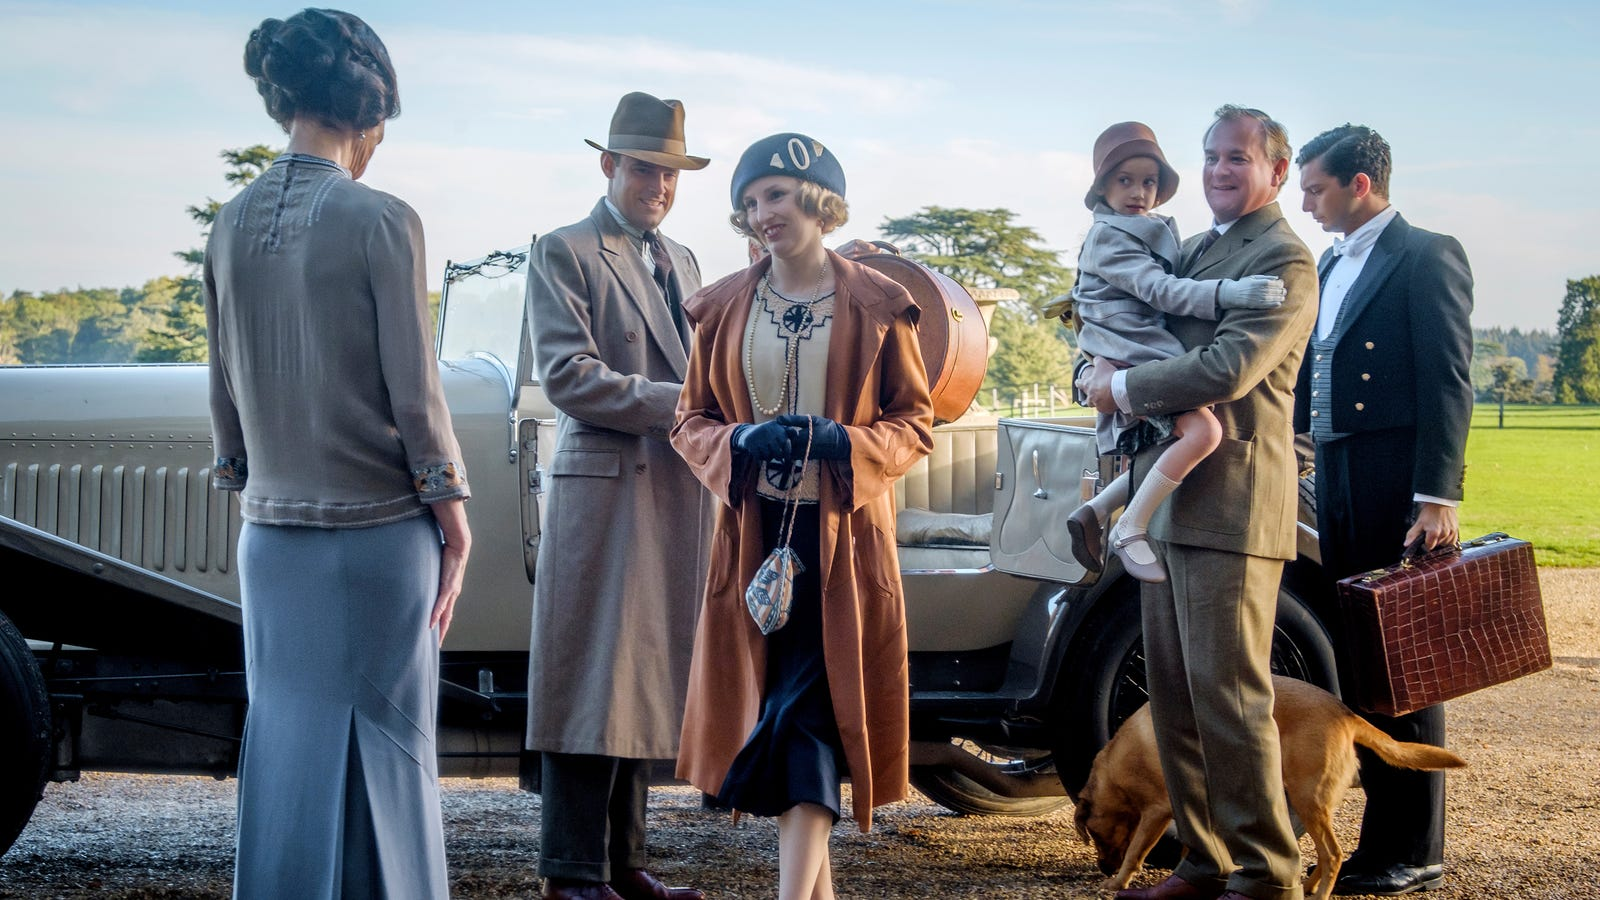 The Downton Abbey movie is as pleasant as a cozy cup of tea